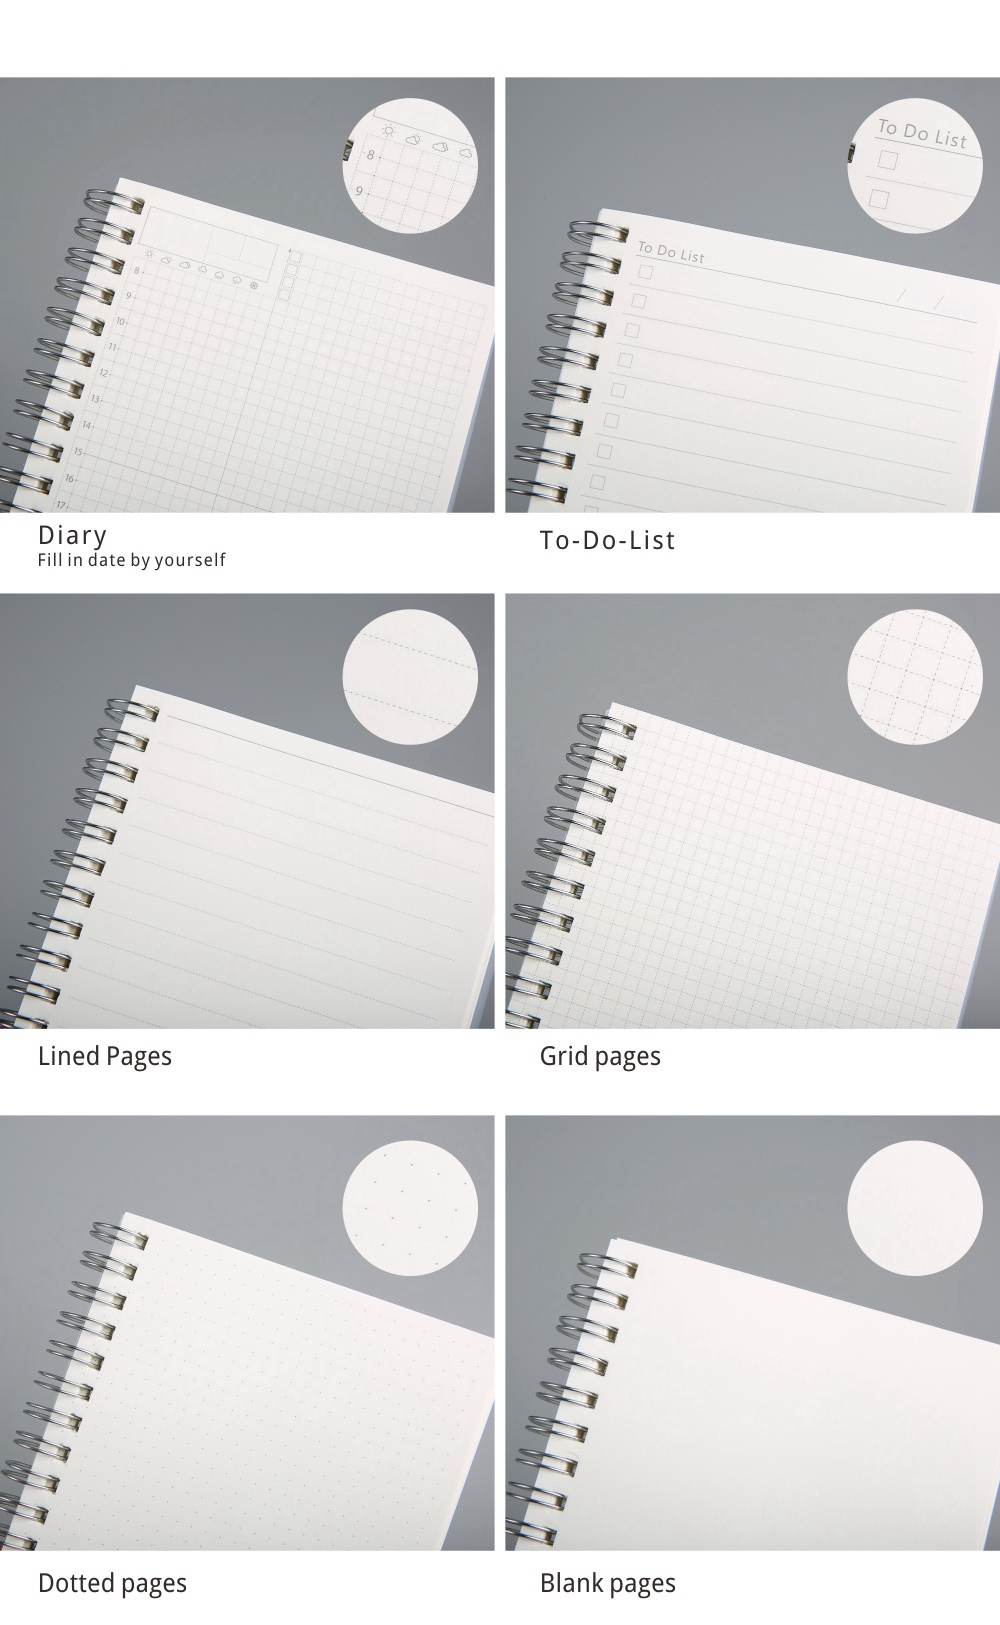 A5 Spiral Coil Notebook To-Do Lined Dotted Blank Grid Paper Journal Diary Sketchbook School Supplies